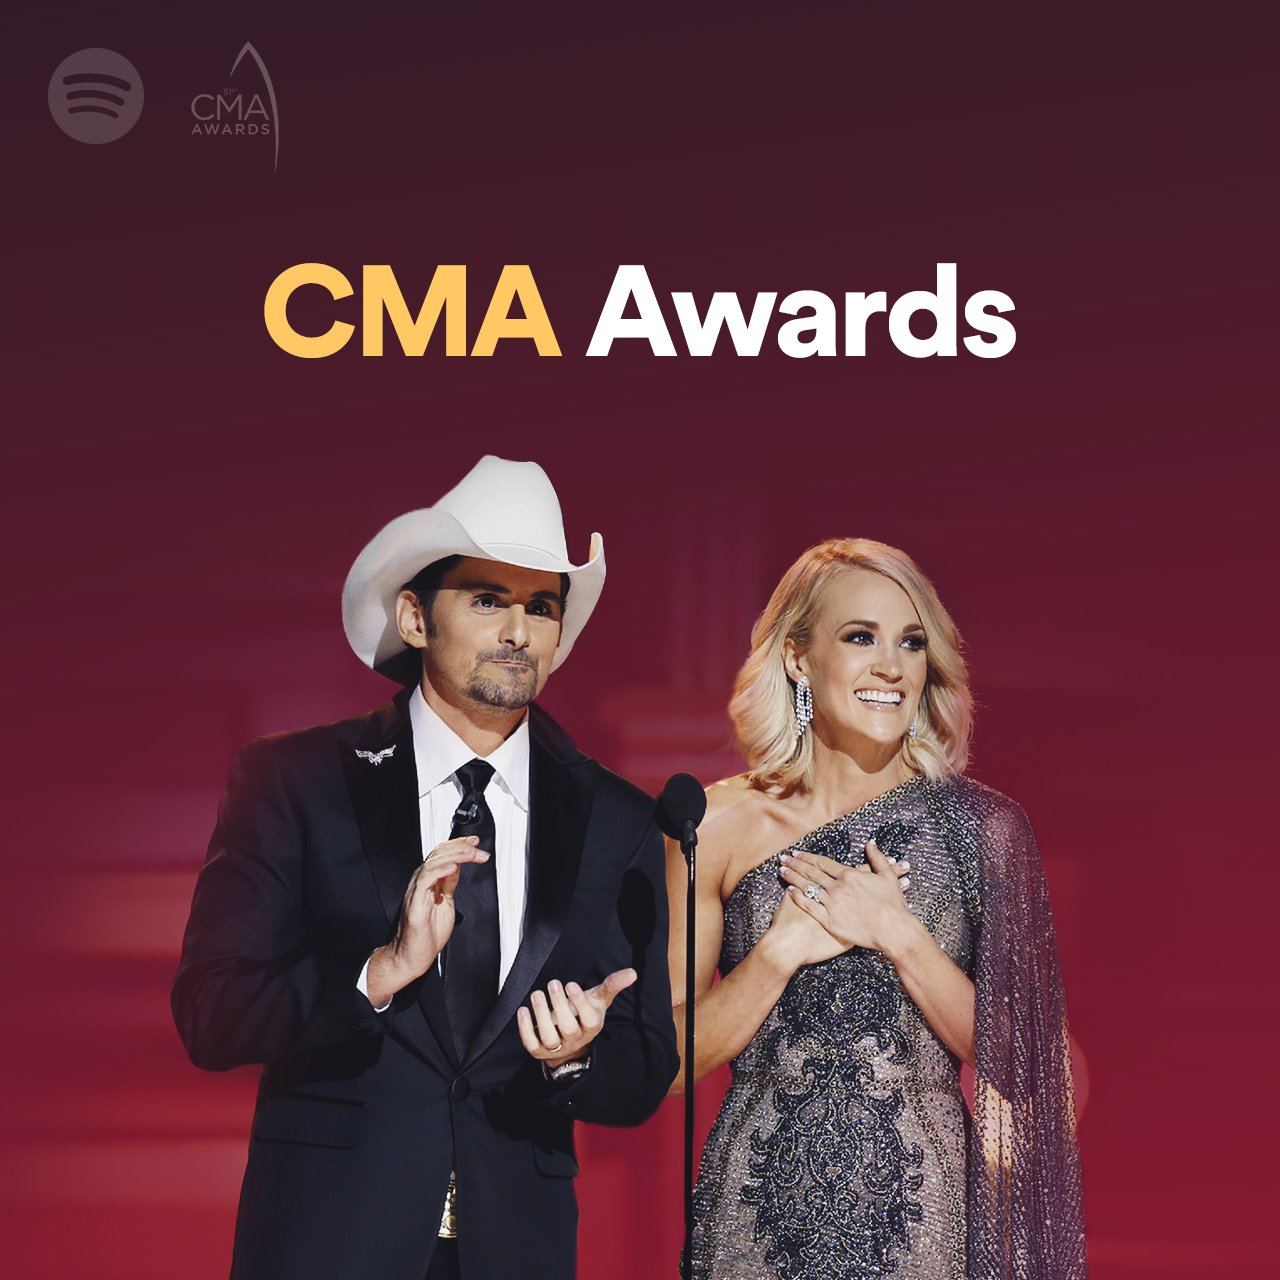 Get ready for the 2017 #CMAawards with music from this year's nominees. https://t.co/f3VsVqnKEx https://t.co/GyYICpztfB